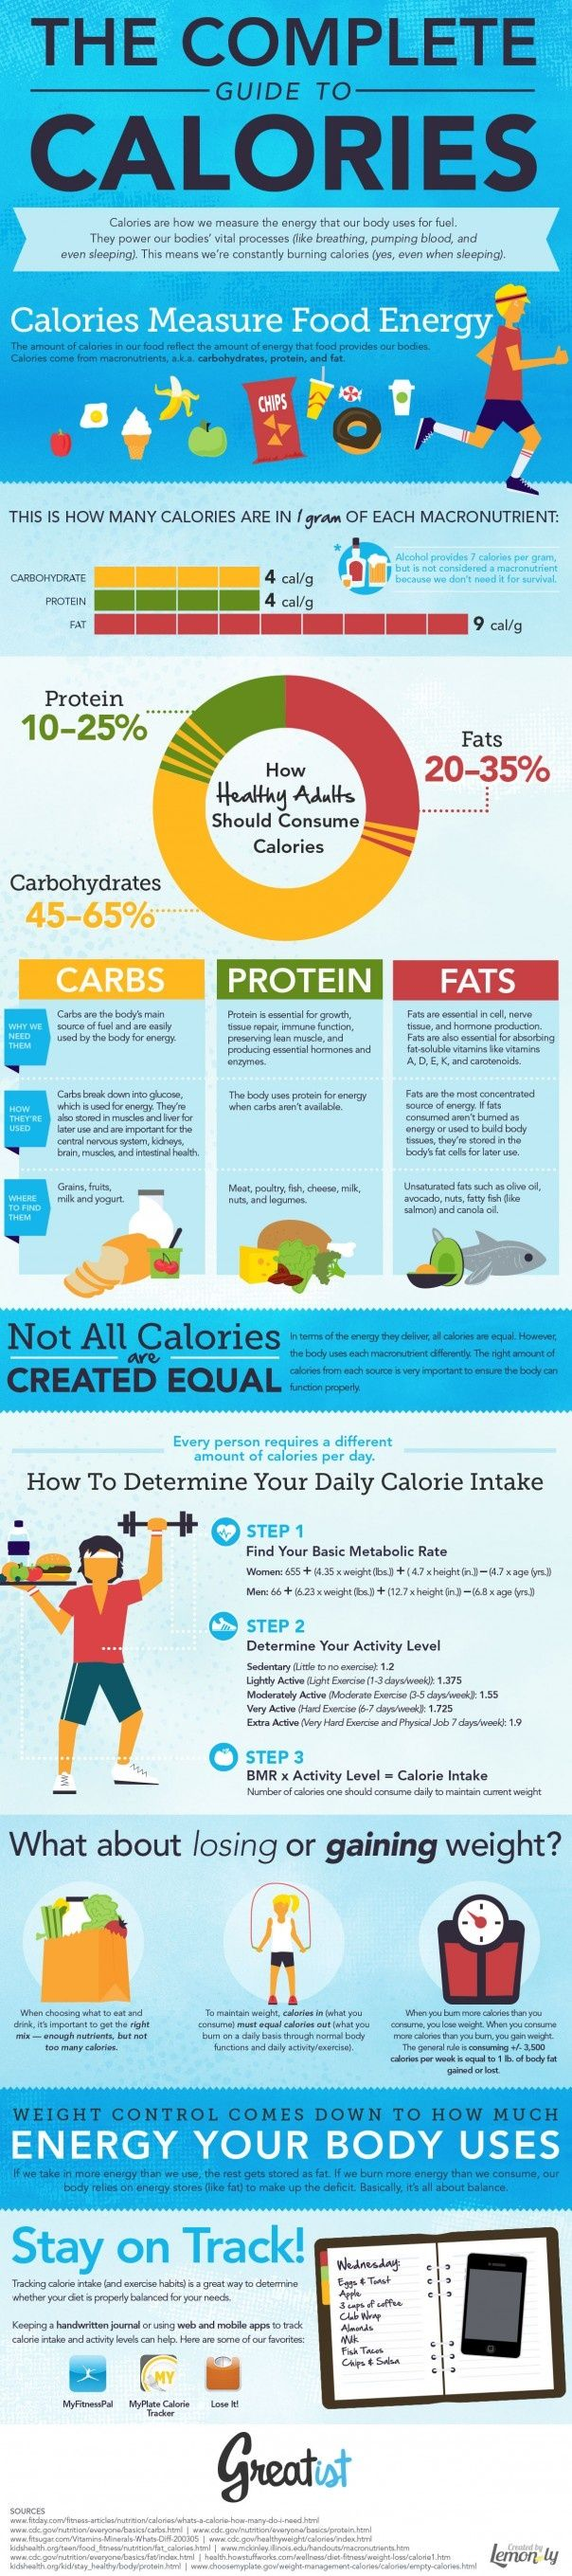 The Complete Guide To Calories Infographic Health Health And Nutrition Healthy Living